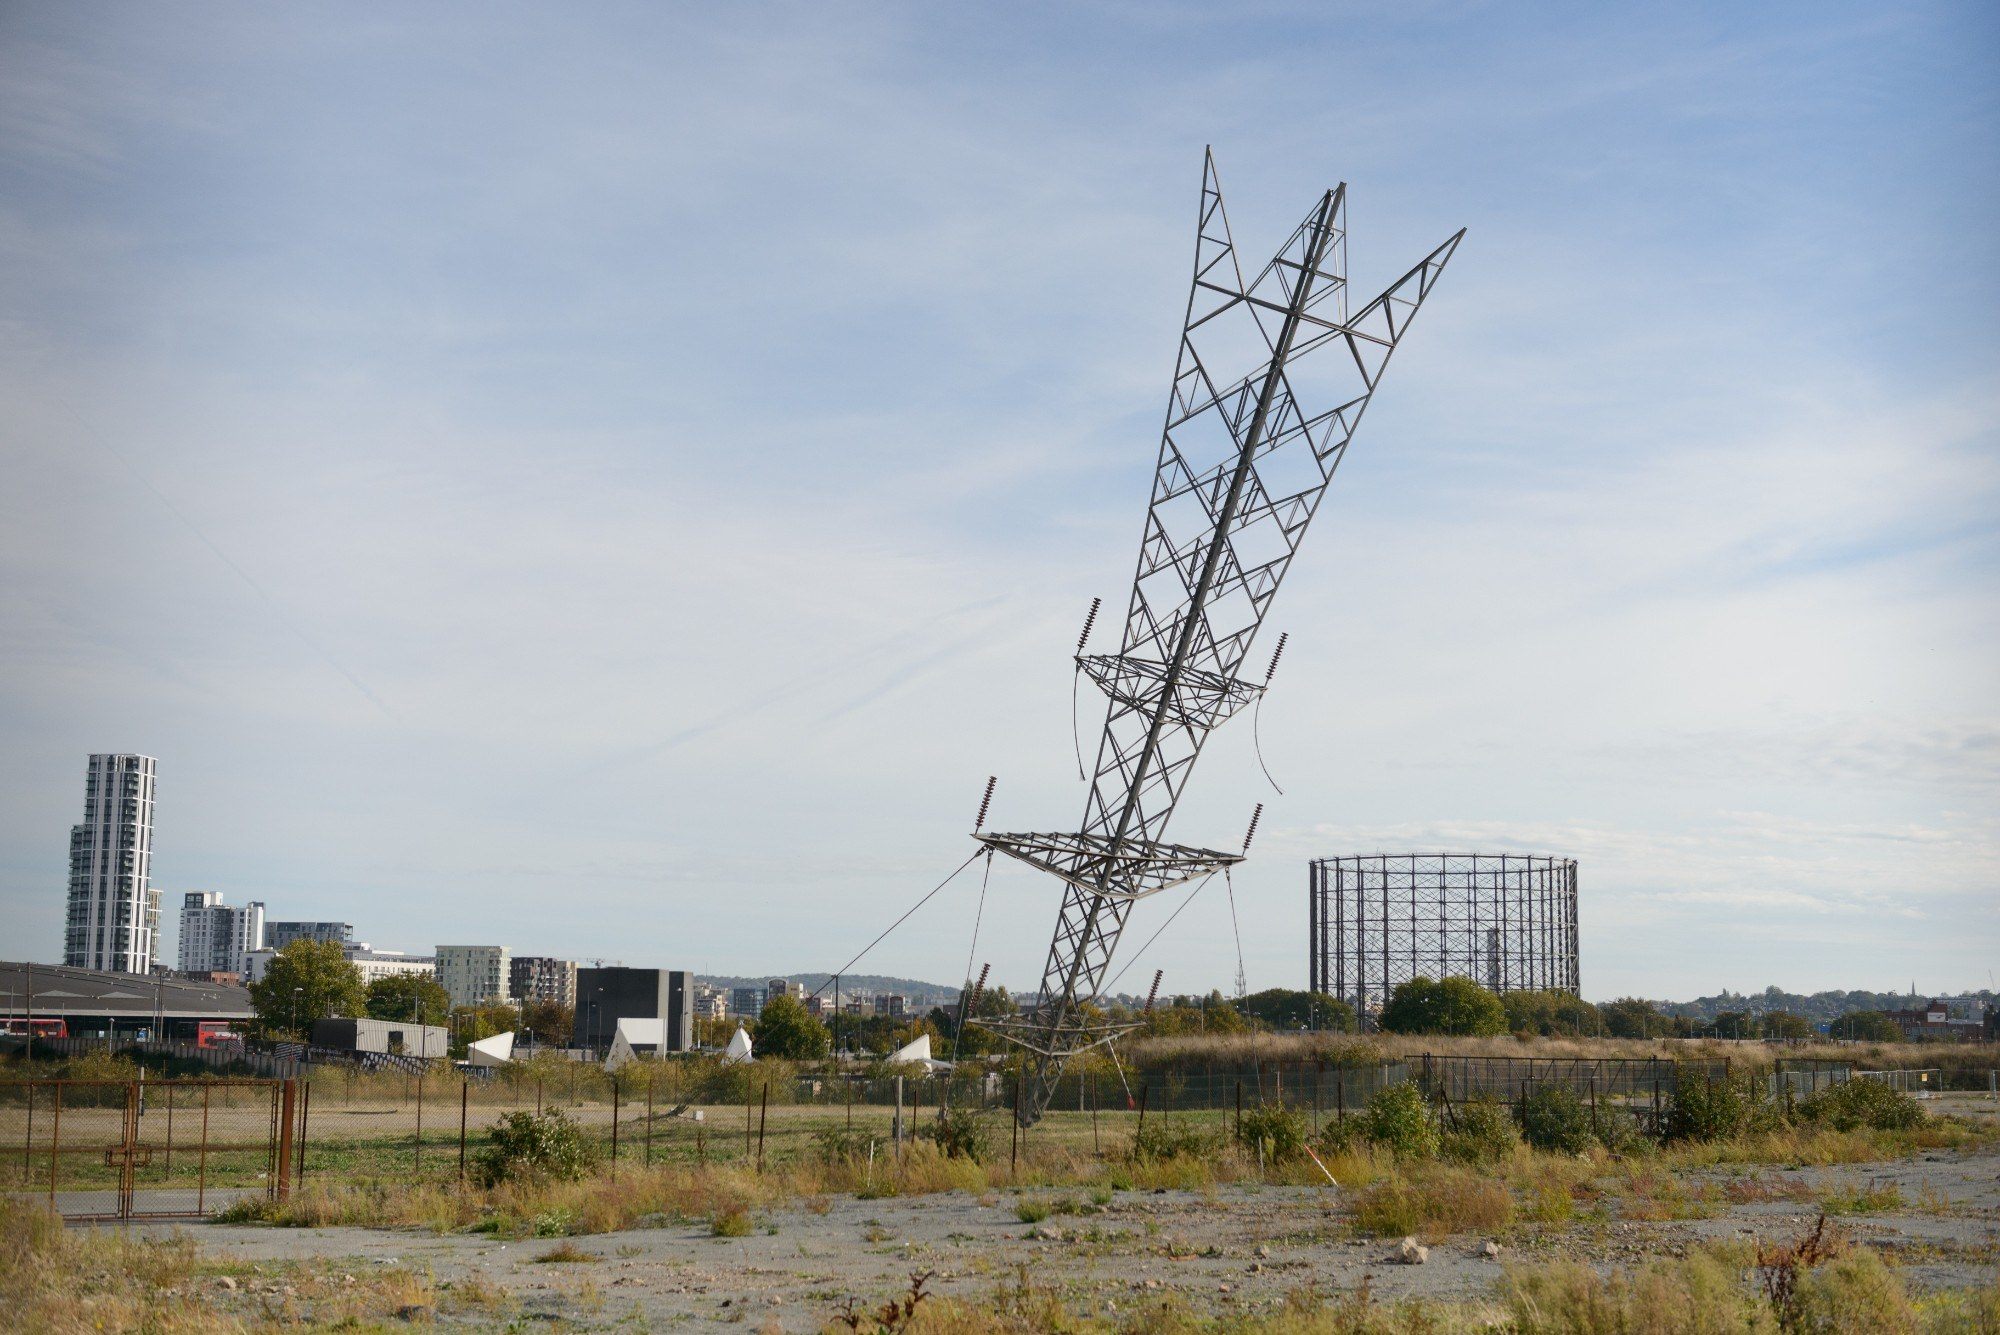 Sculpture that appears to be an electricity pylon that has crashed landed into the earth head first